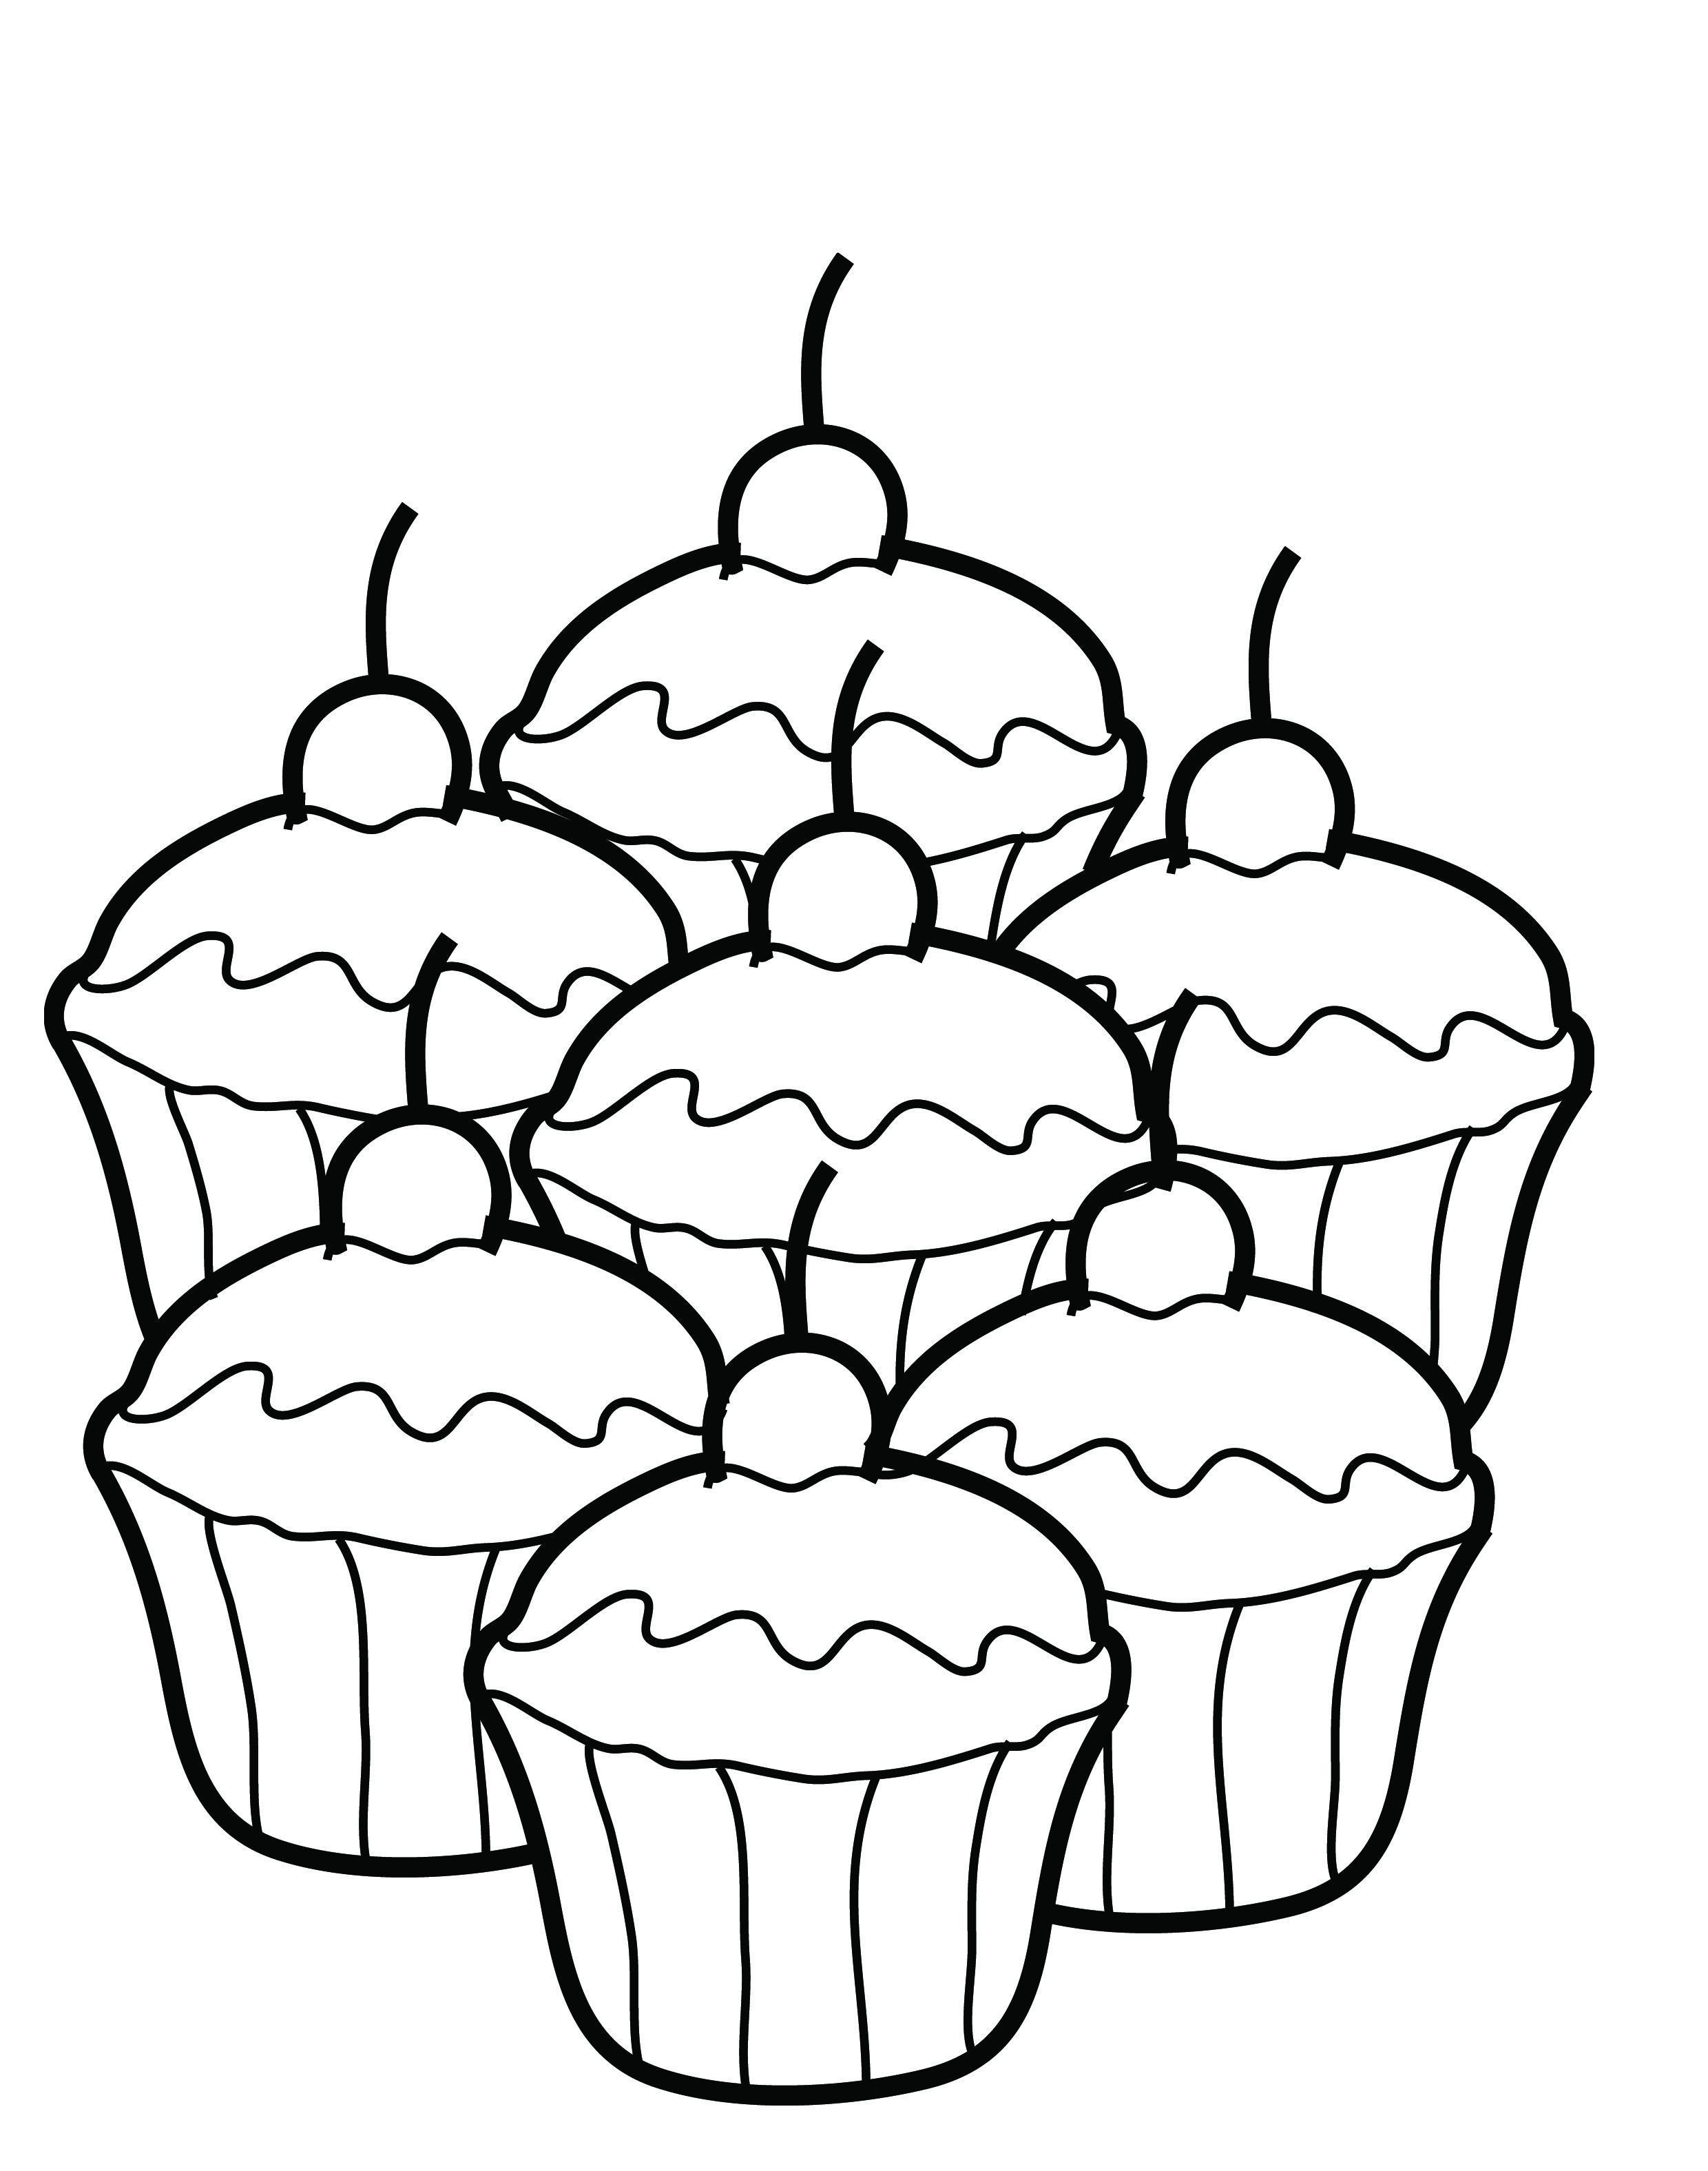 cupcake coloring pages for kids - Printable Coloring For Kids